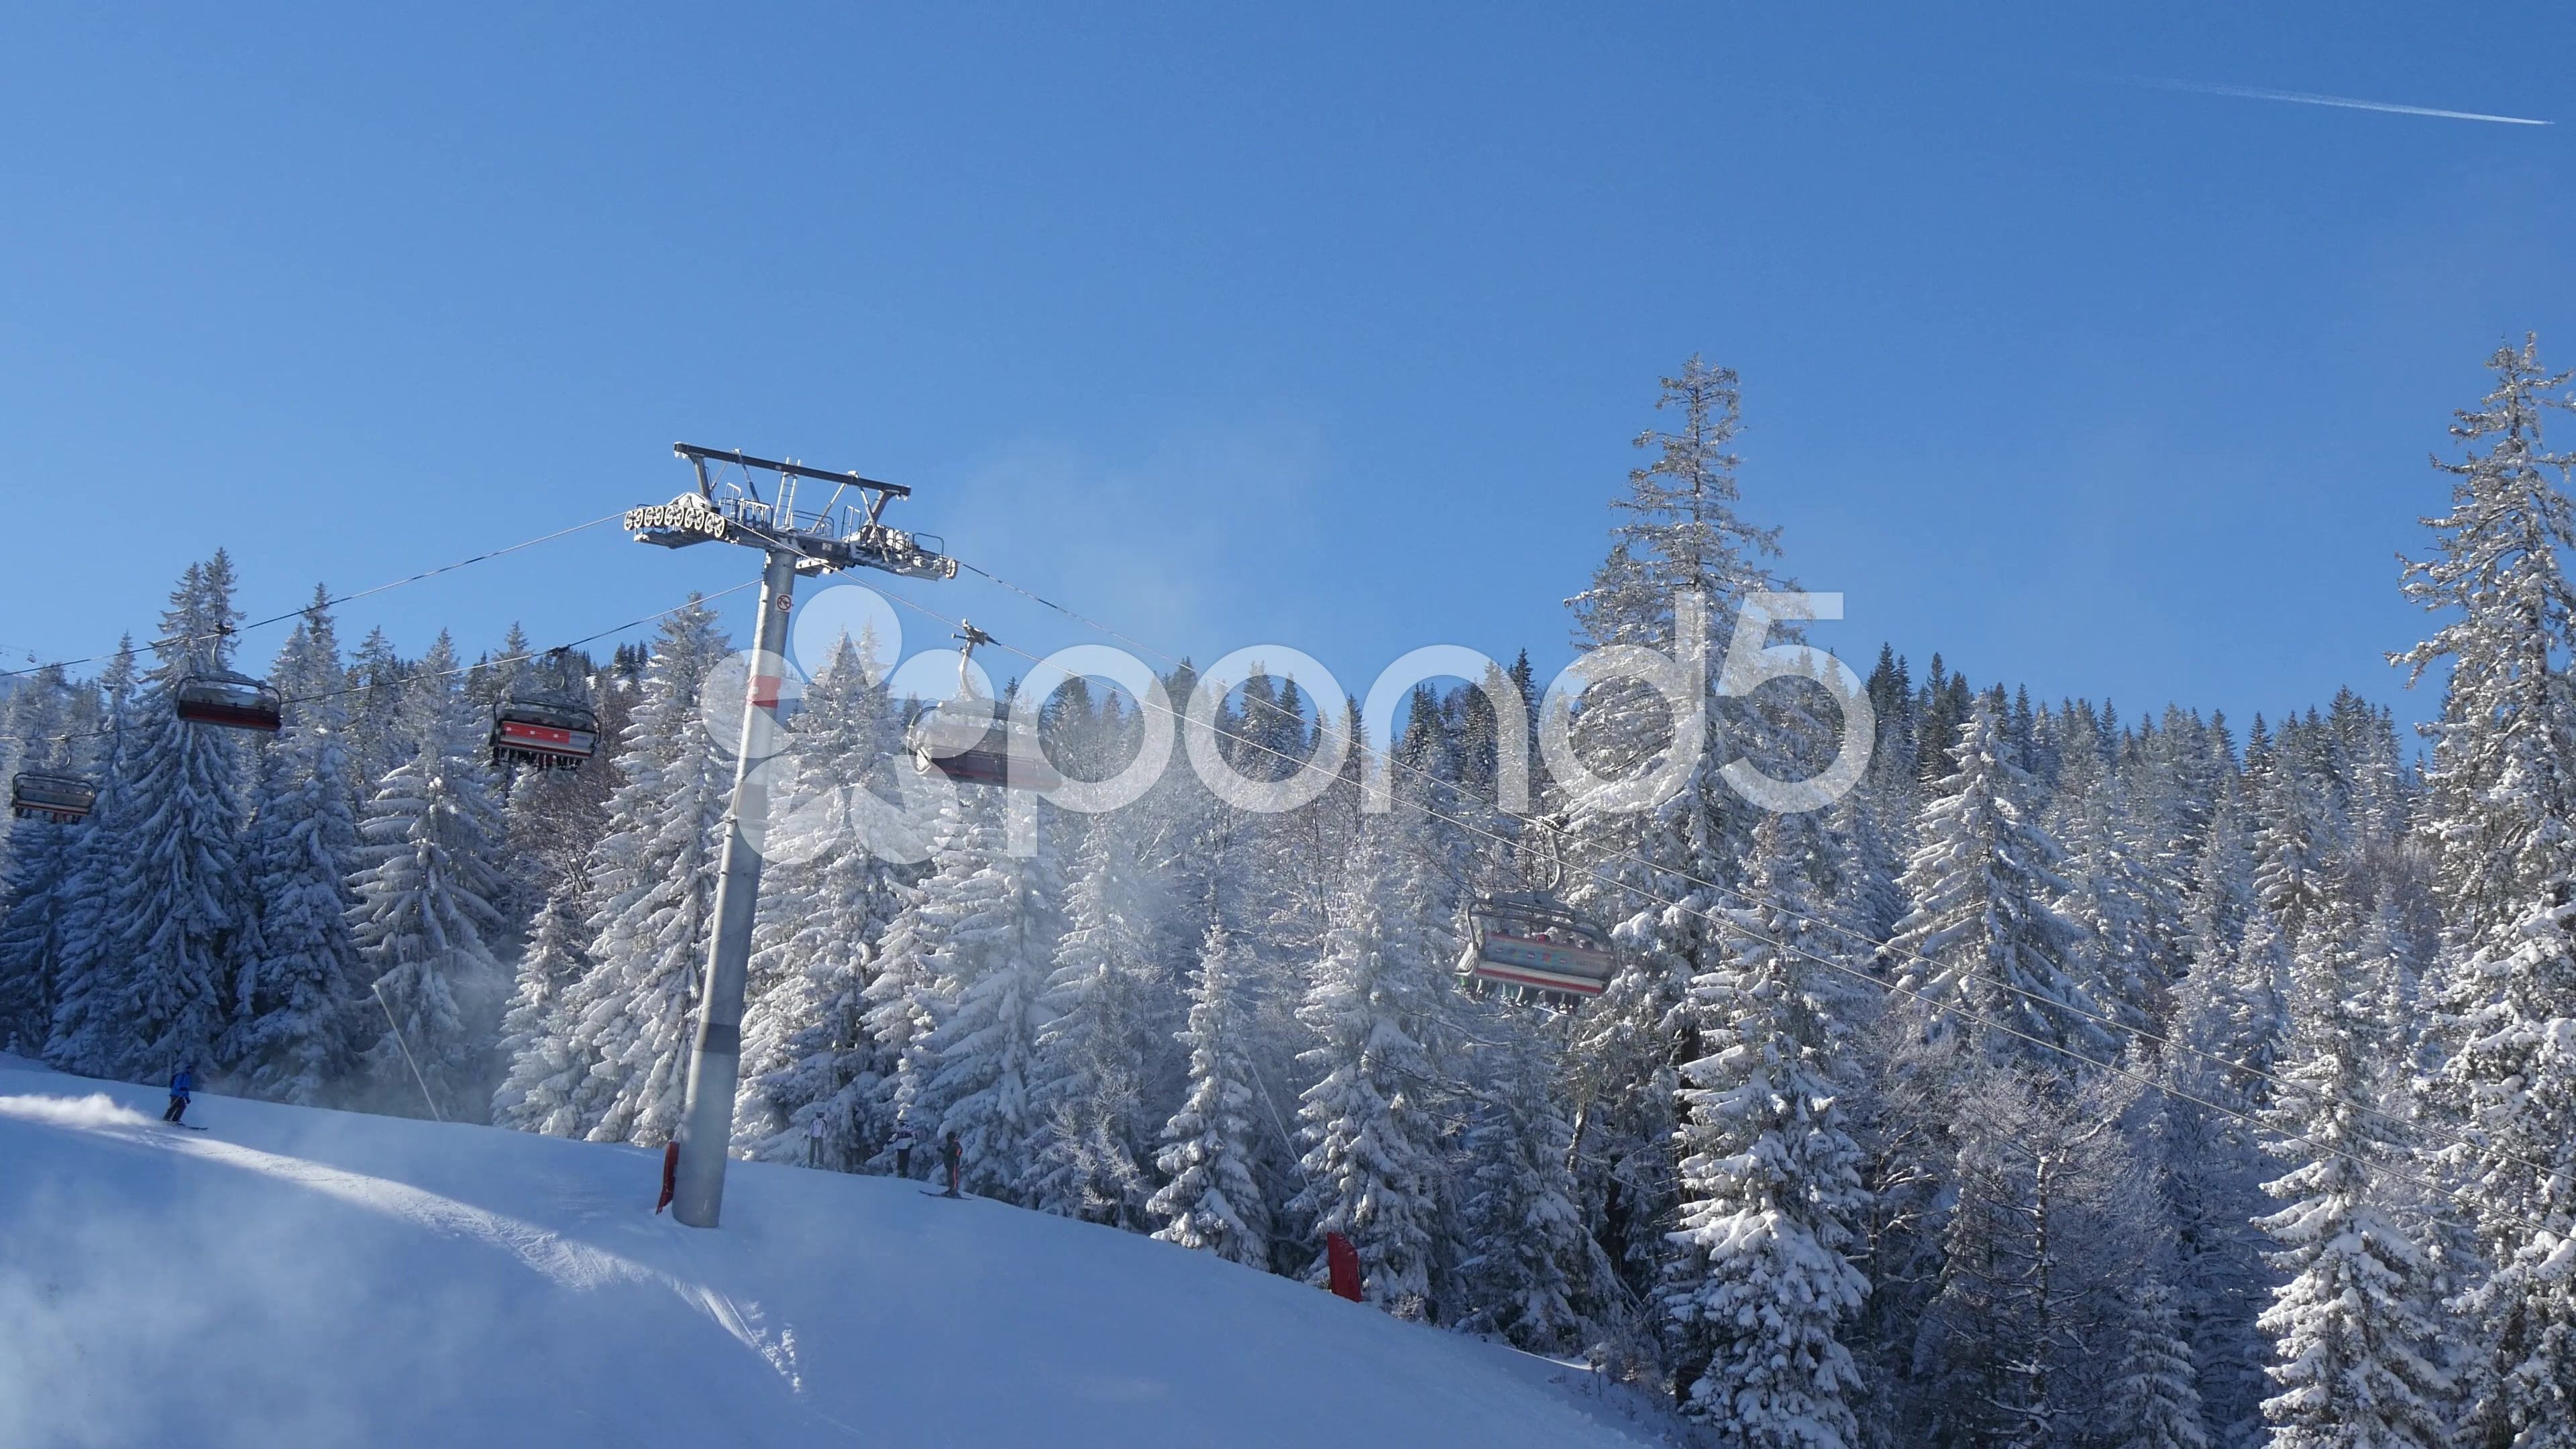 Ski Lift And Skiing People 4k Stock Footage Ad Skiing Lift Ski Footage Ski Lift Skiing Portfolio Template Design